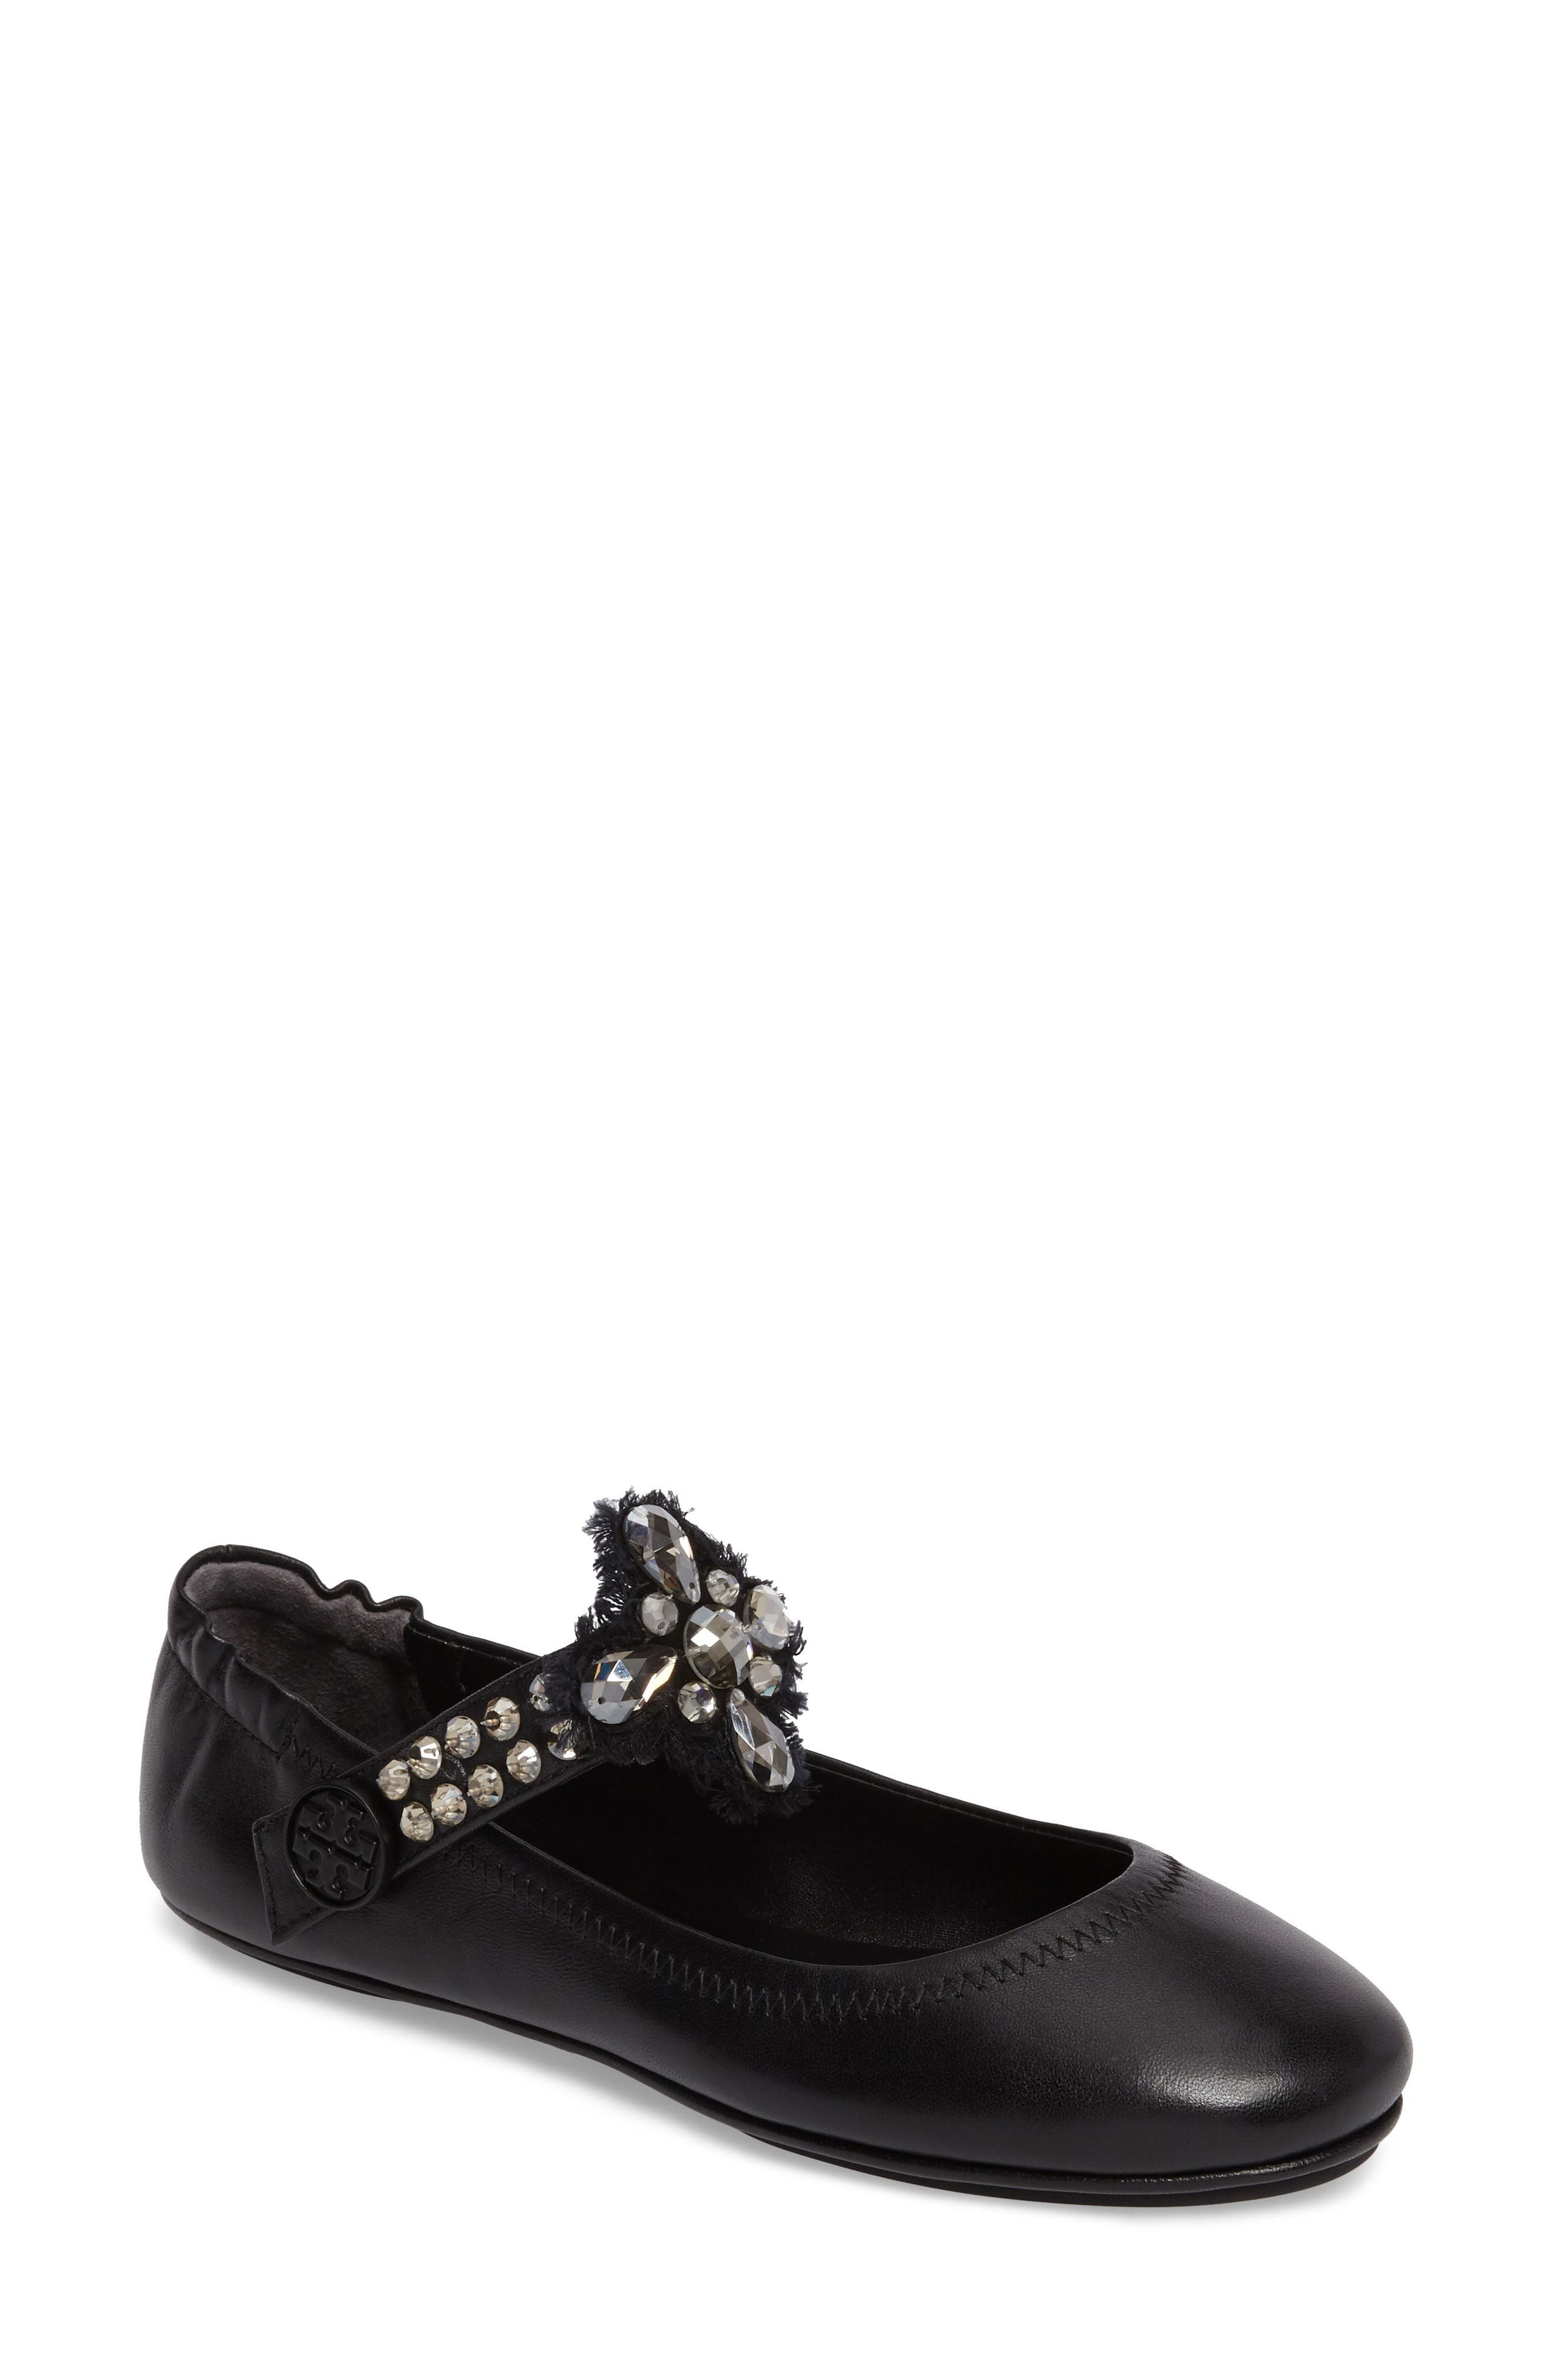 Minnie Embellished Convertible Strap Ballet Flat,                         Main,                         color, 019